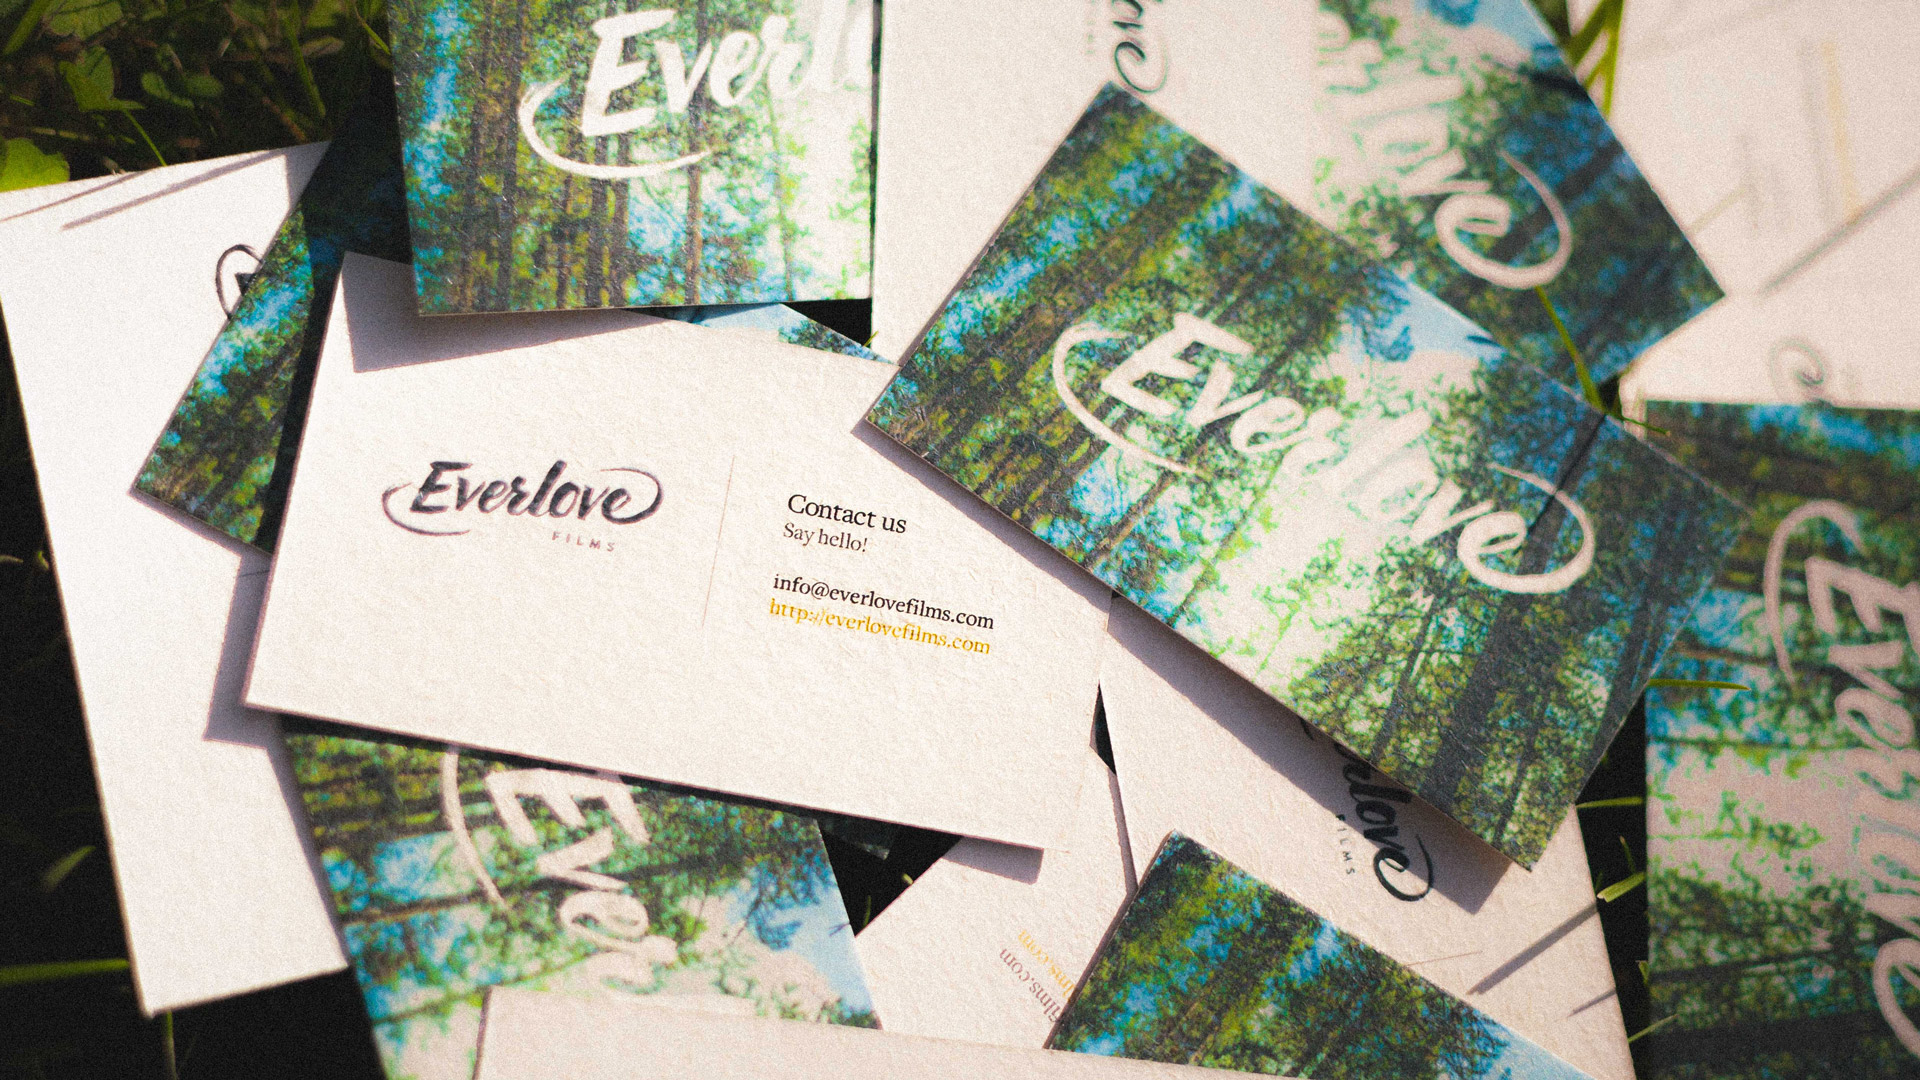 Everlove_BusinessCards